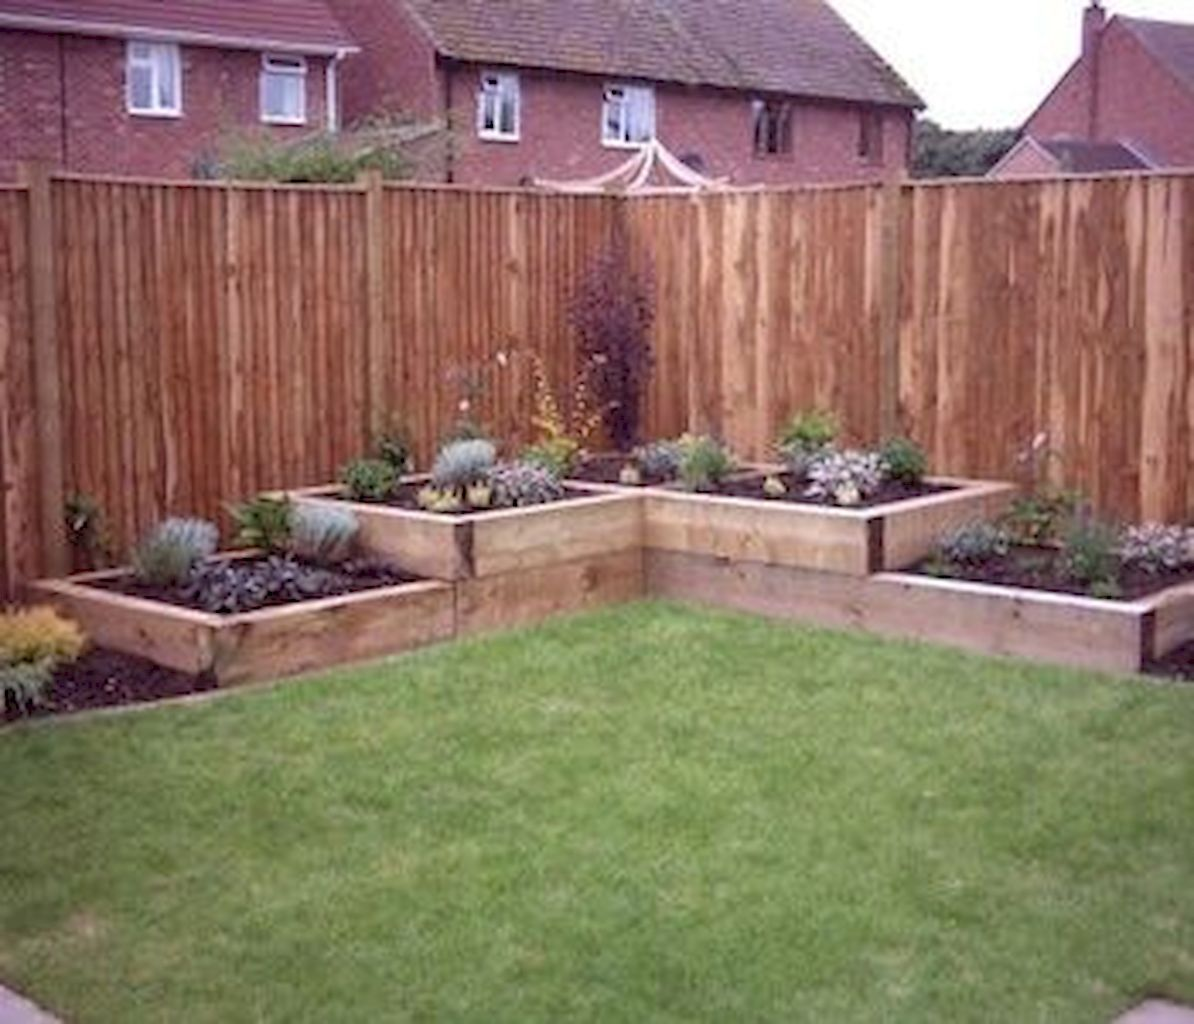 40 beautiful backyard landscaping ideas on a budget for Landscaping ideas on a budget